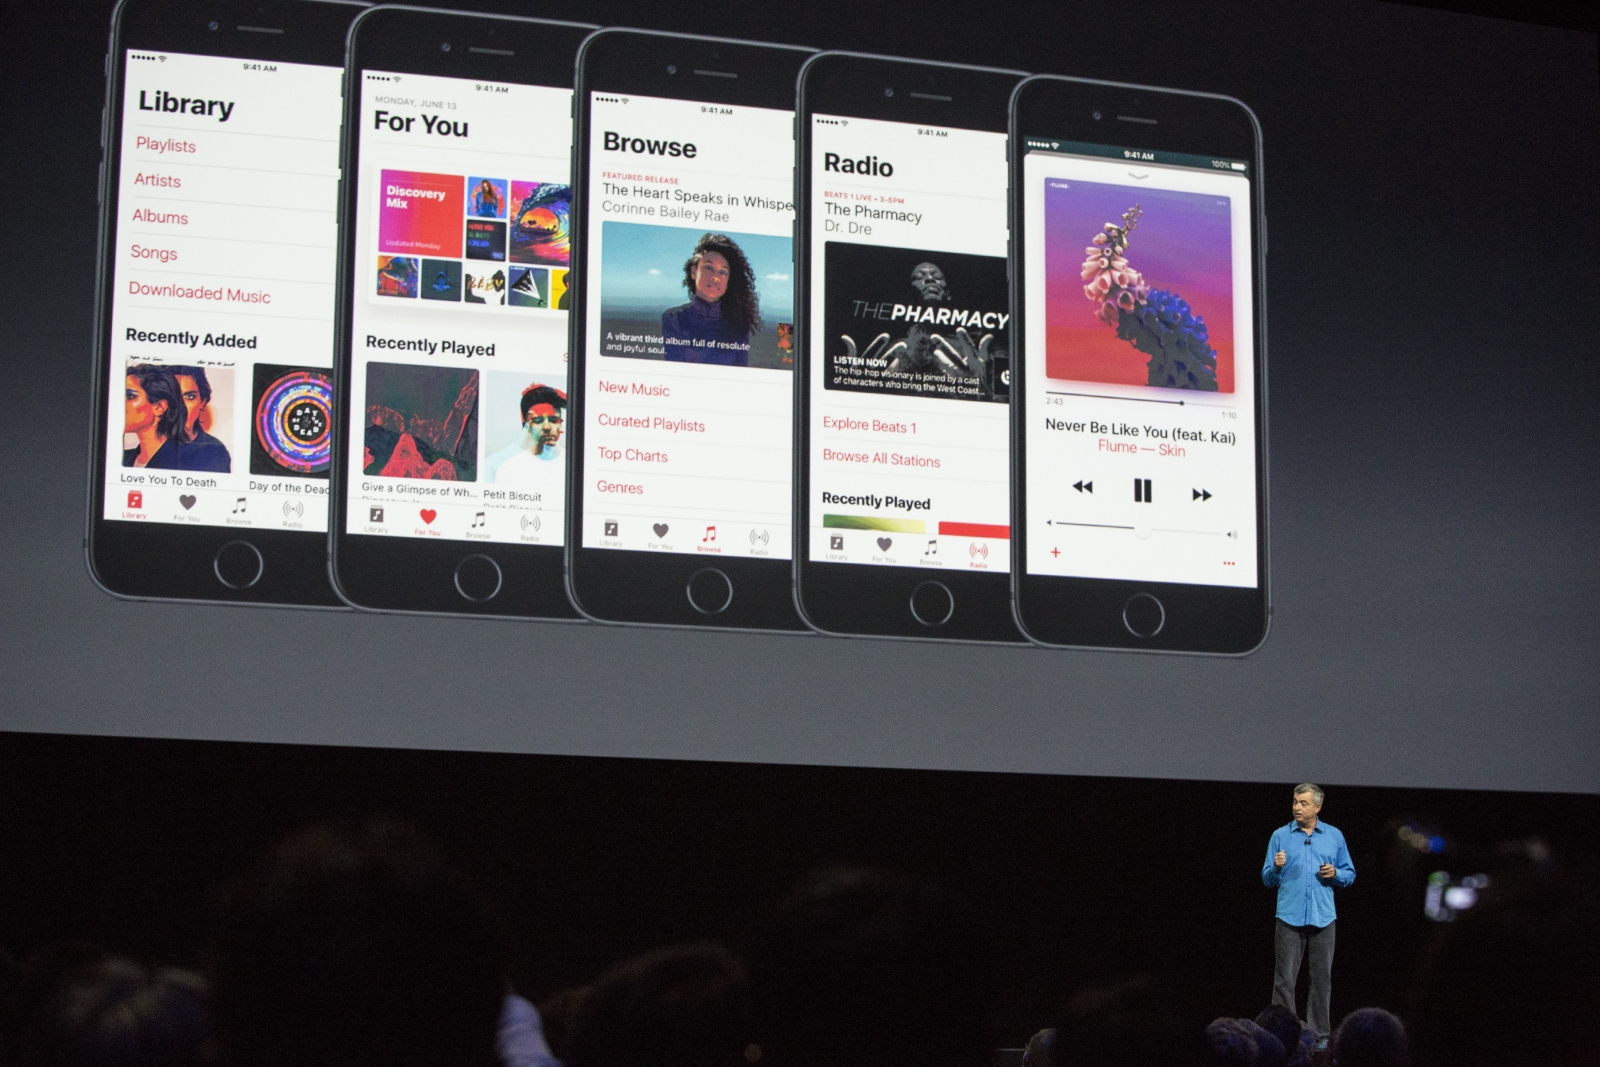 Apple announces iOS 10